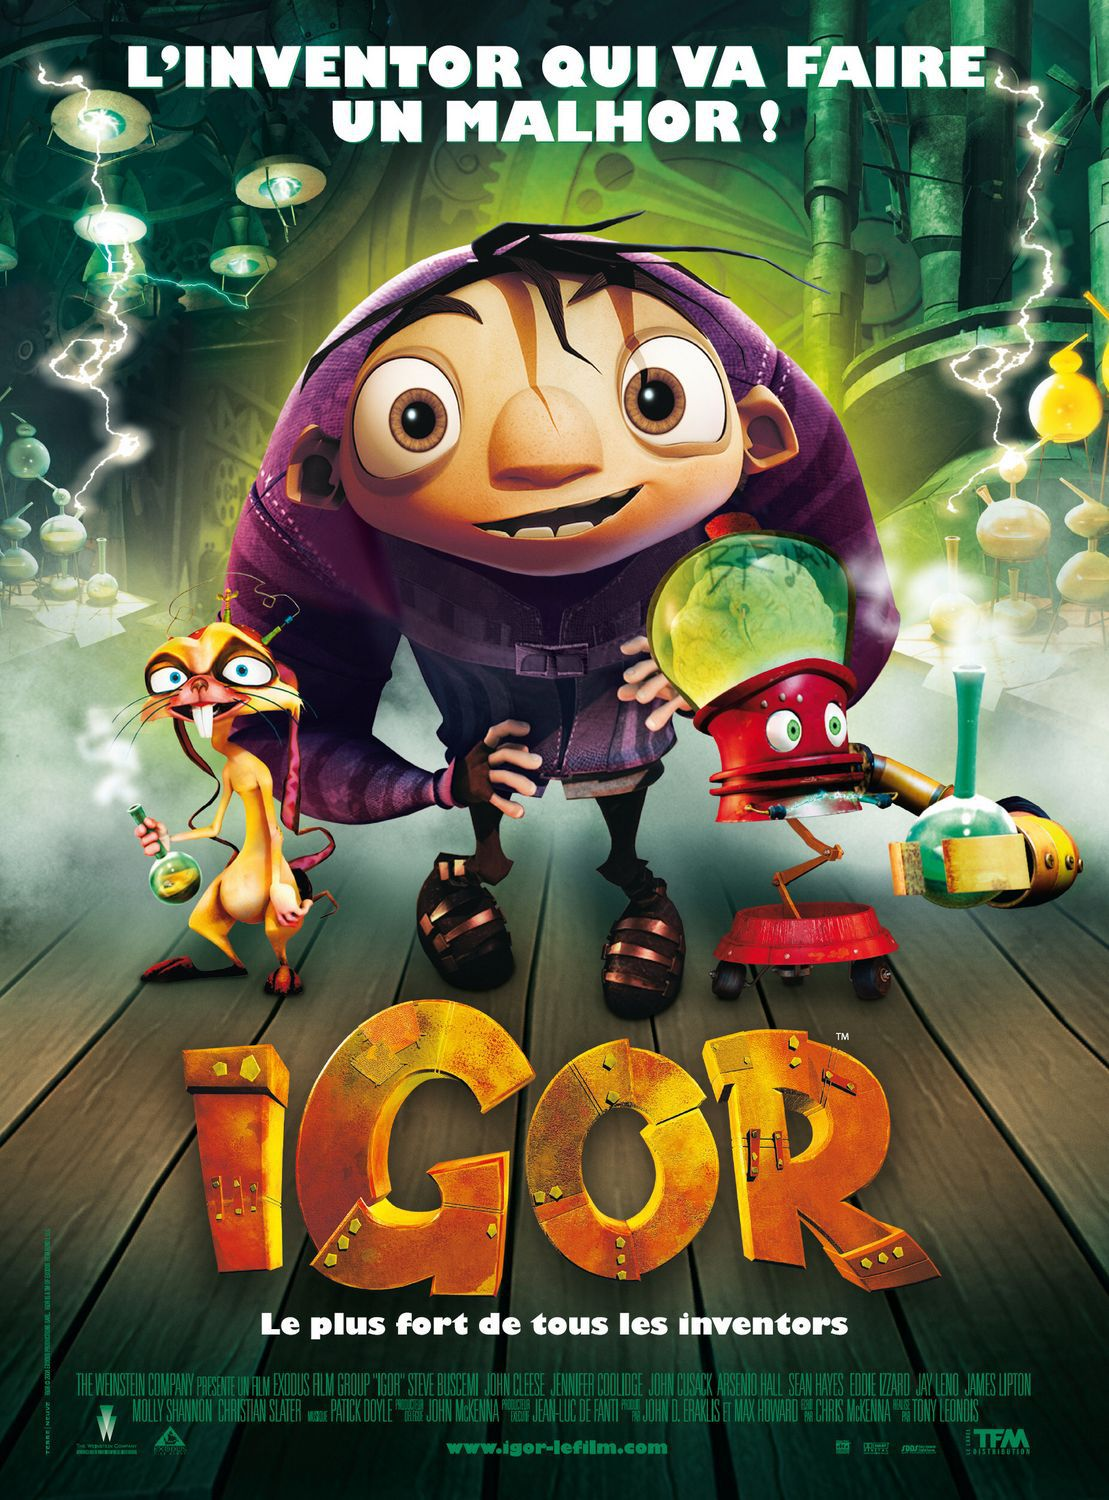 iGor ... animated film ... l'inventor qui va faire un malor! - poster